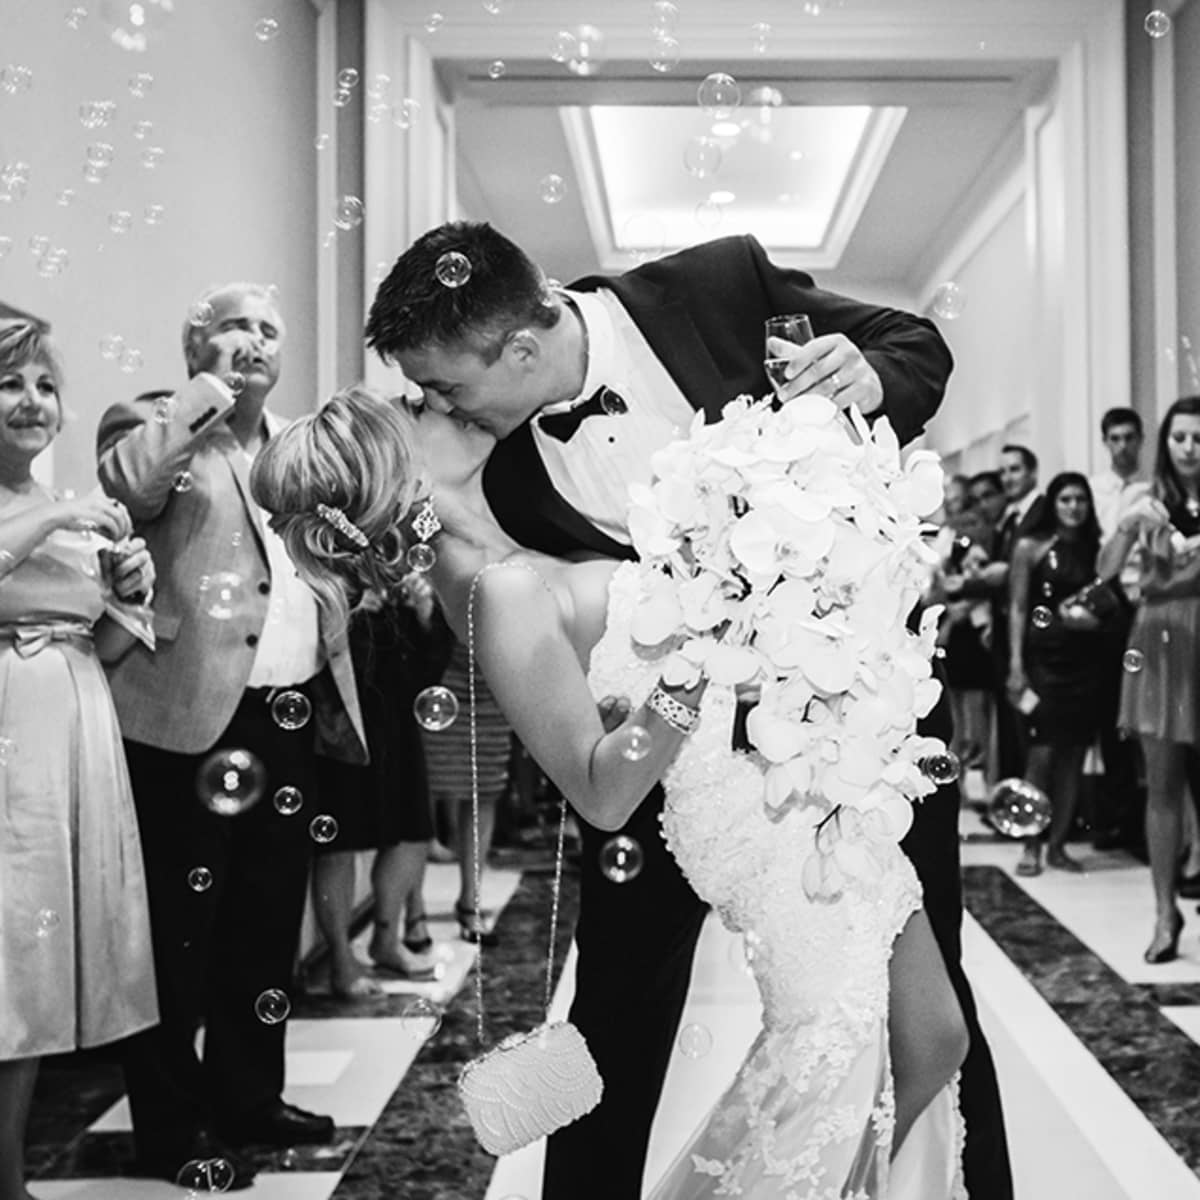 Instead Of Tossing Rice Guests Blow Bubbles As The Newlyweds Make Their Getaway